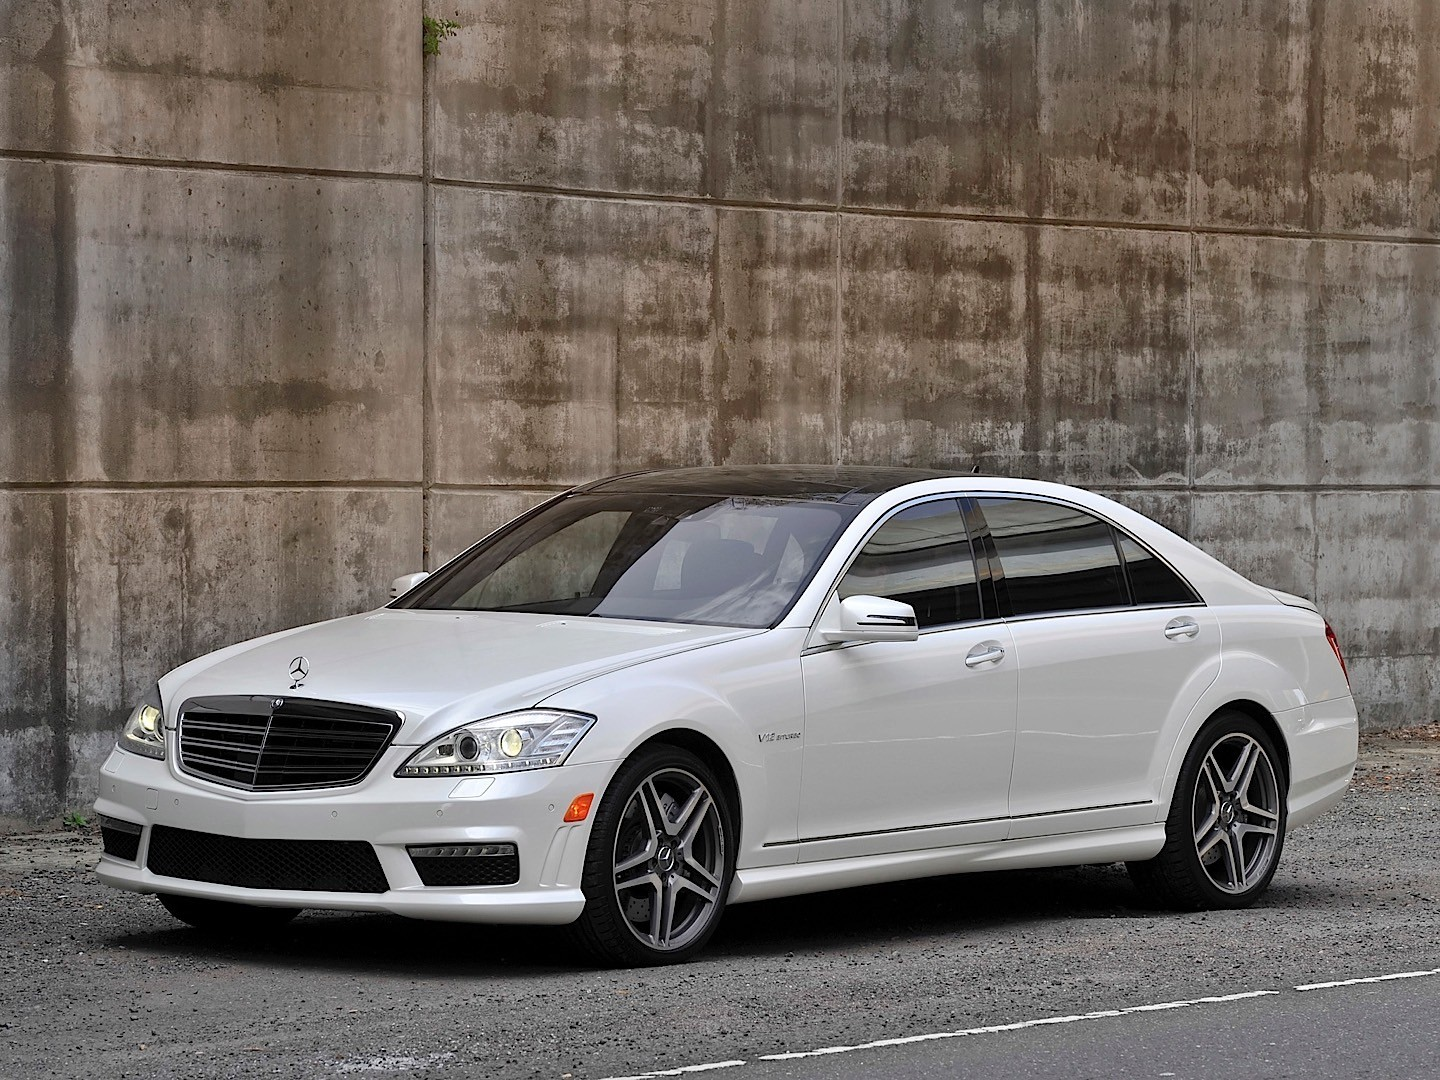 Mercedes benz s 65 amg w221 specs 2009 2010 2011 for Mercedes benz s 65